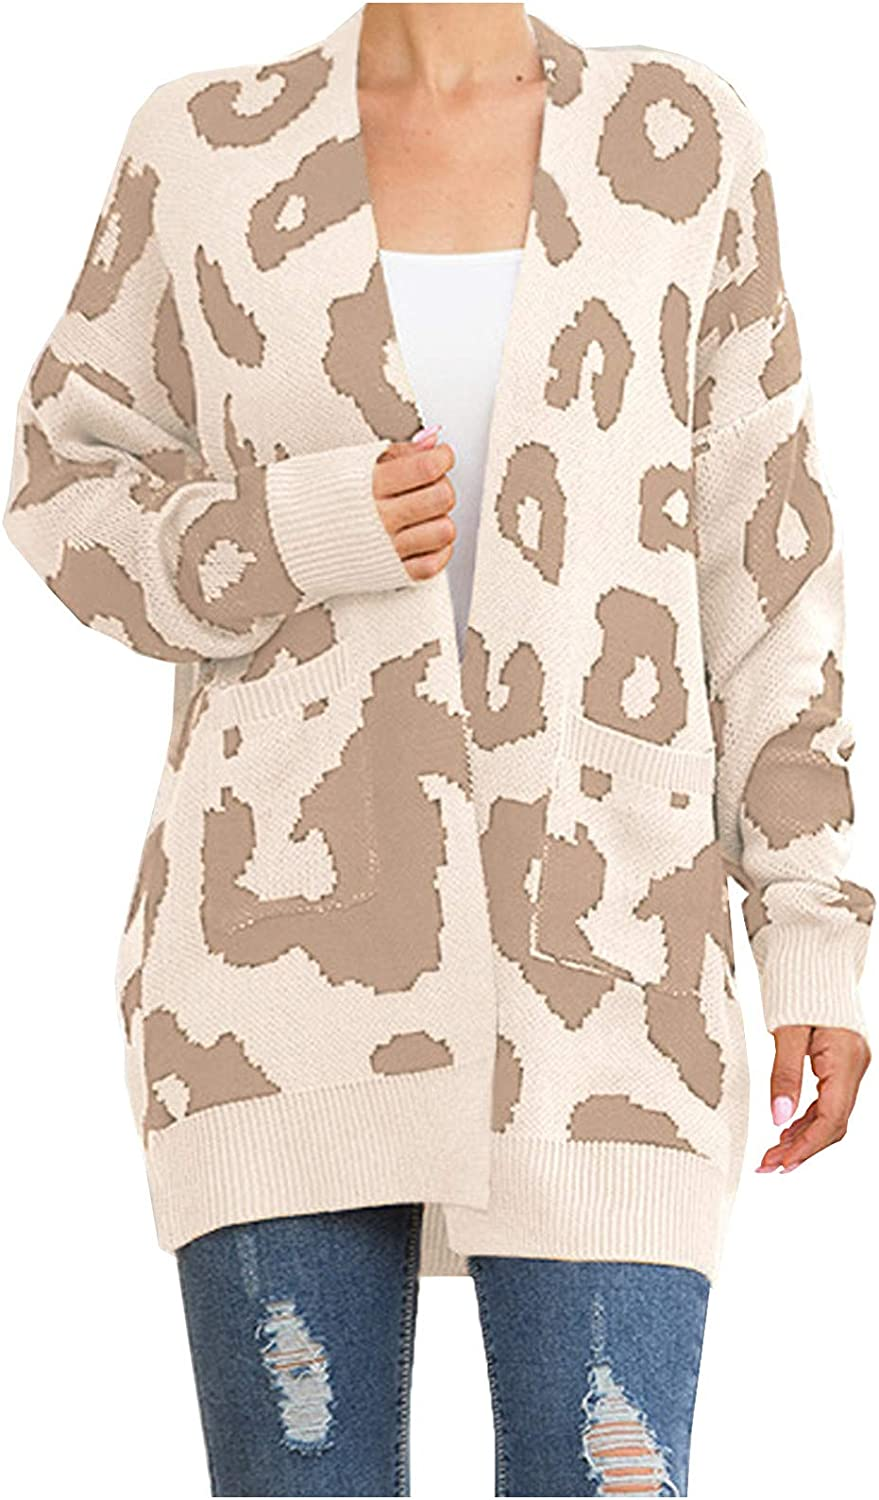 Womens Sweater Leopard Printed Open Super beauty product restock quality top Comfor Front Max 75% OFF Cardigan Jacket